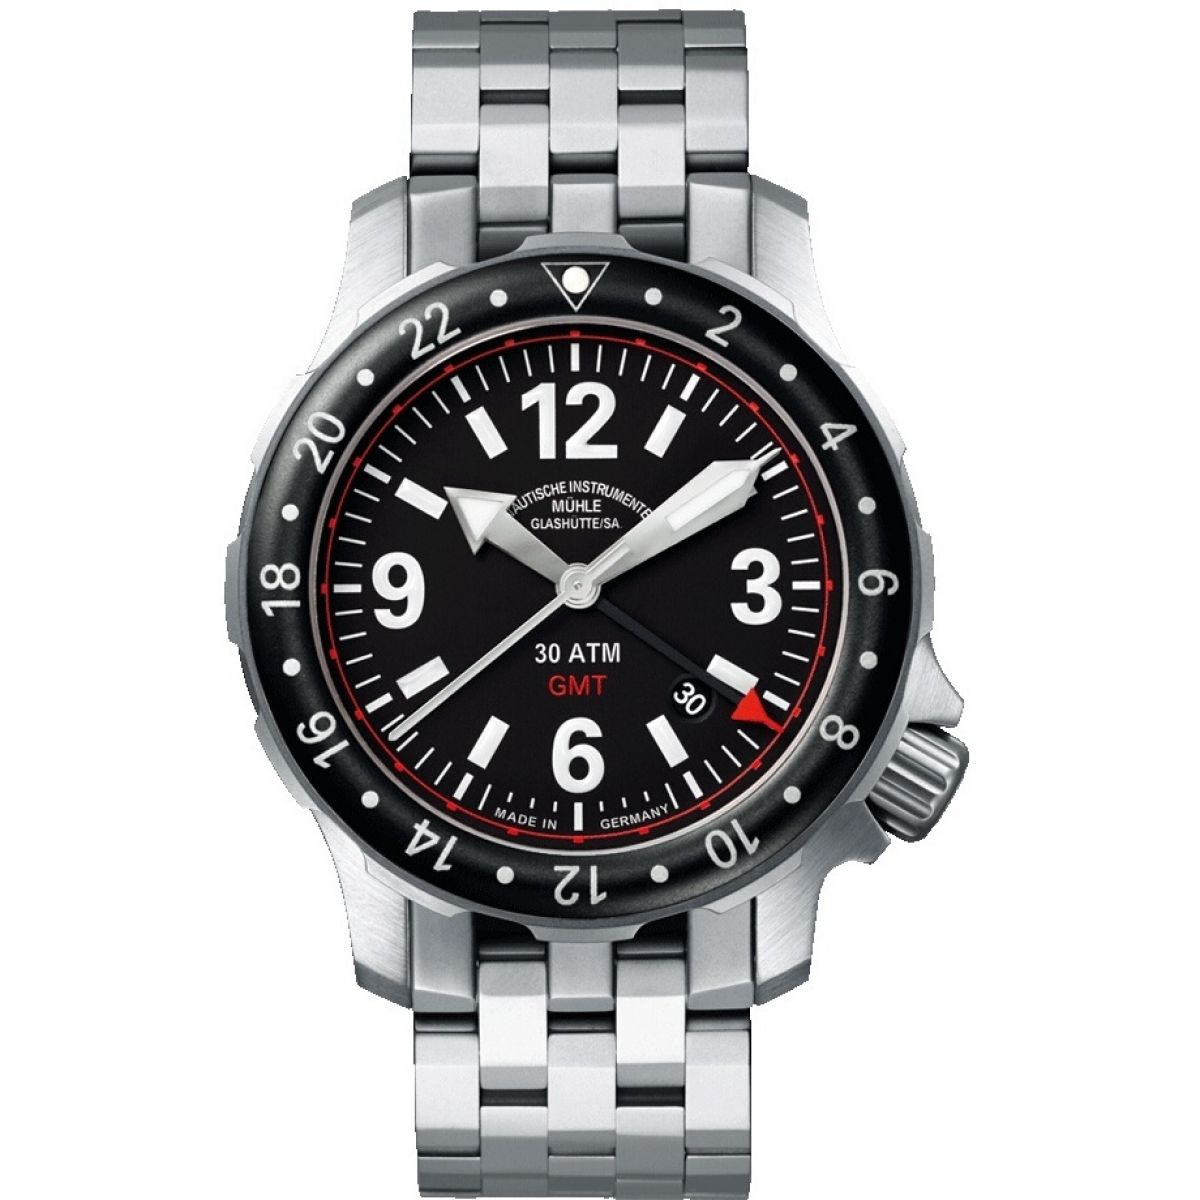 Gents muhle glashutte marinus gmt watch m1 28 53 mb for Muhle watches